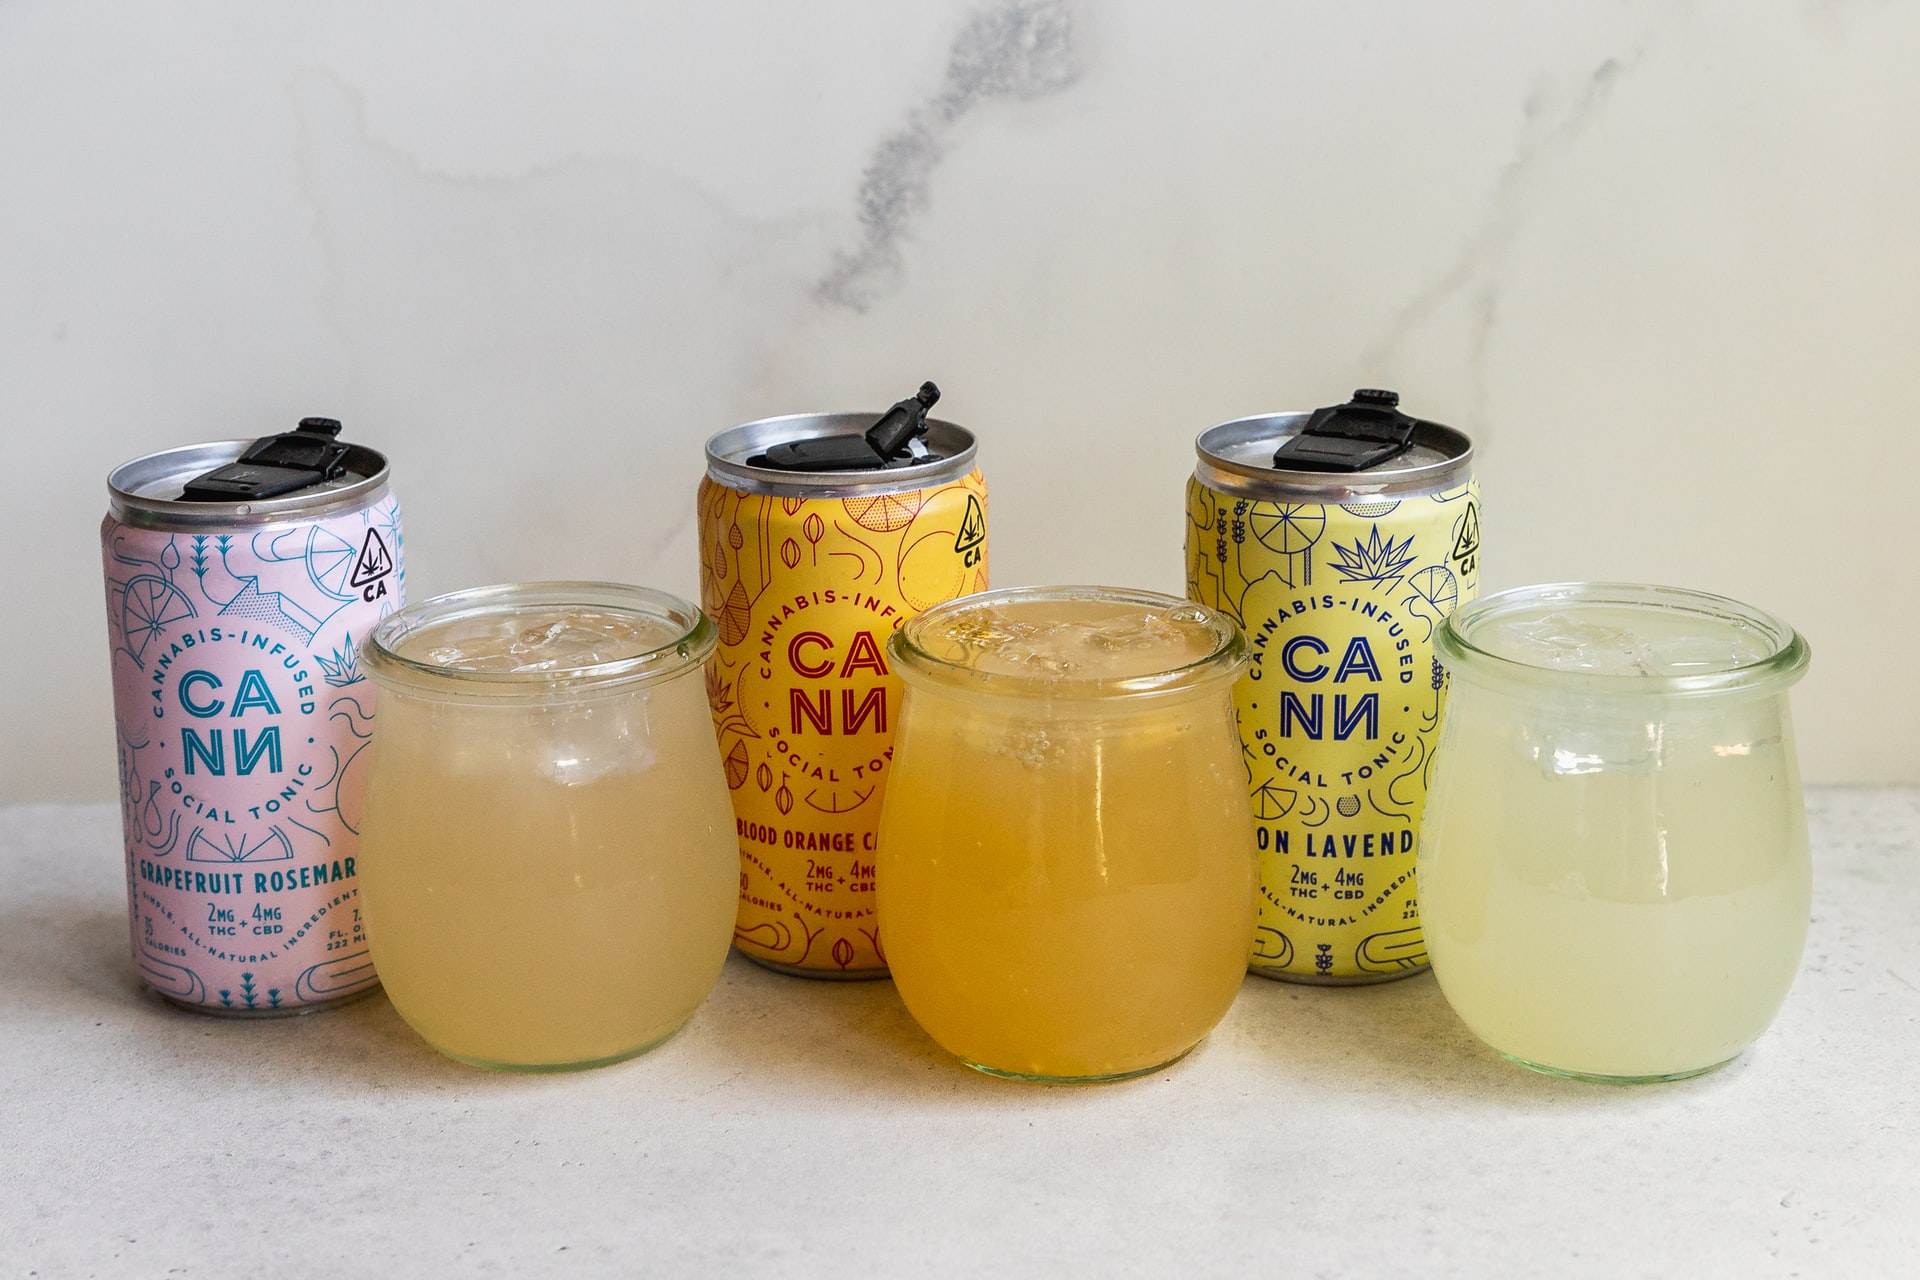 3 cans of cannabis-infused drinks